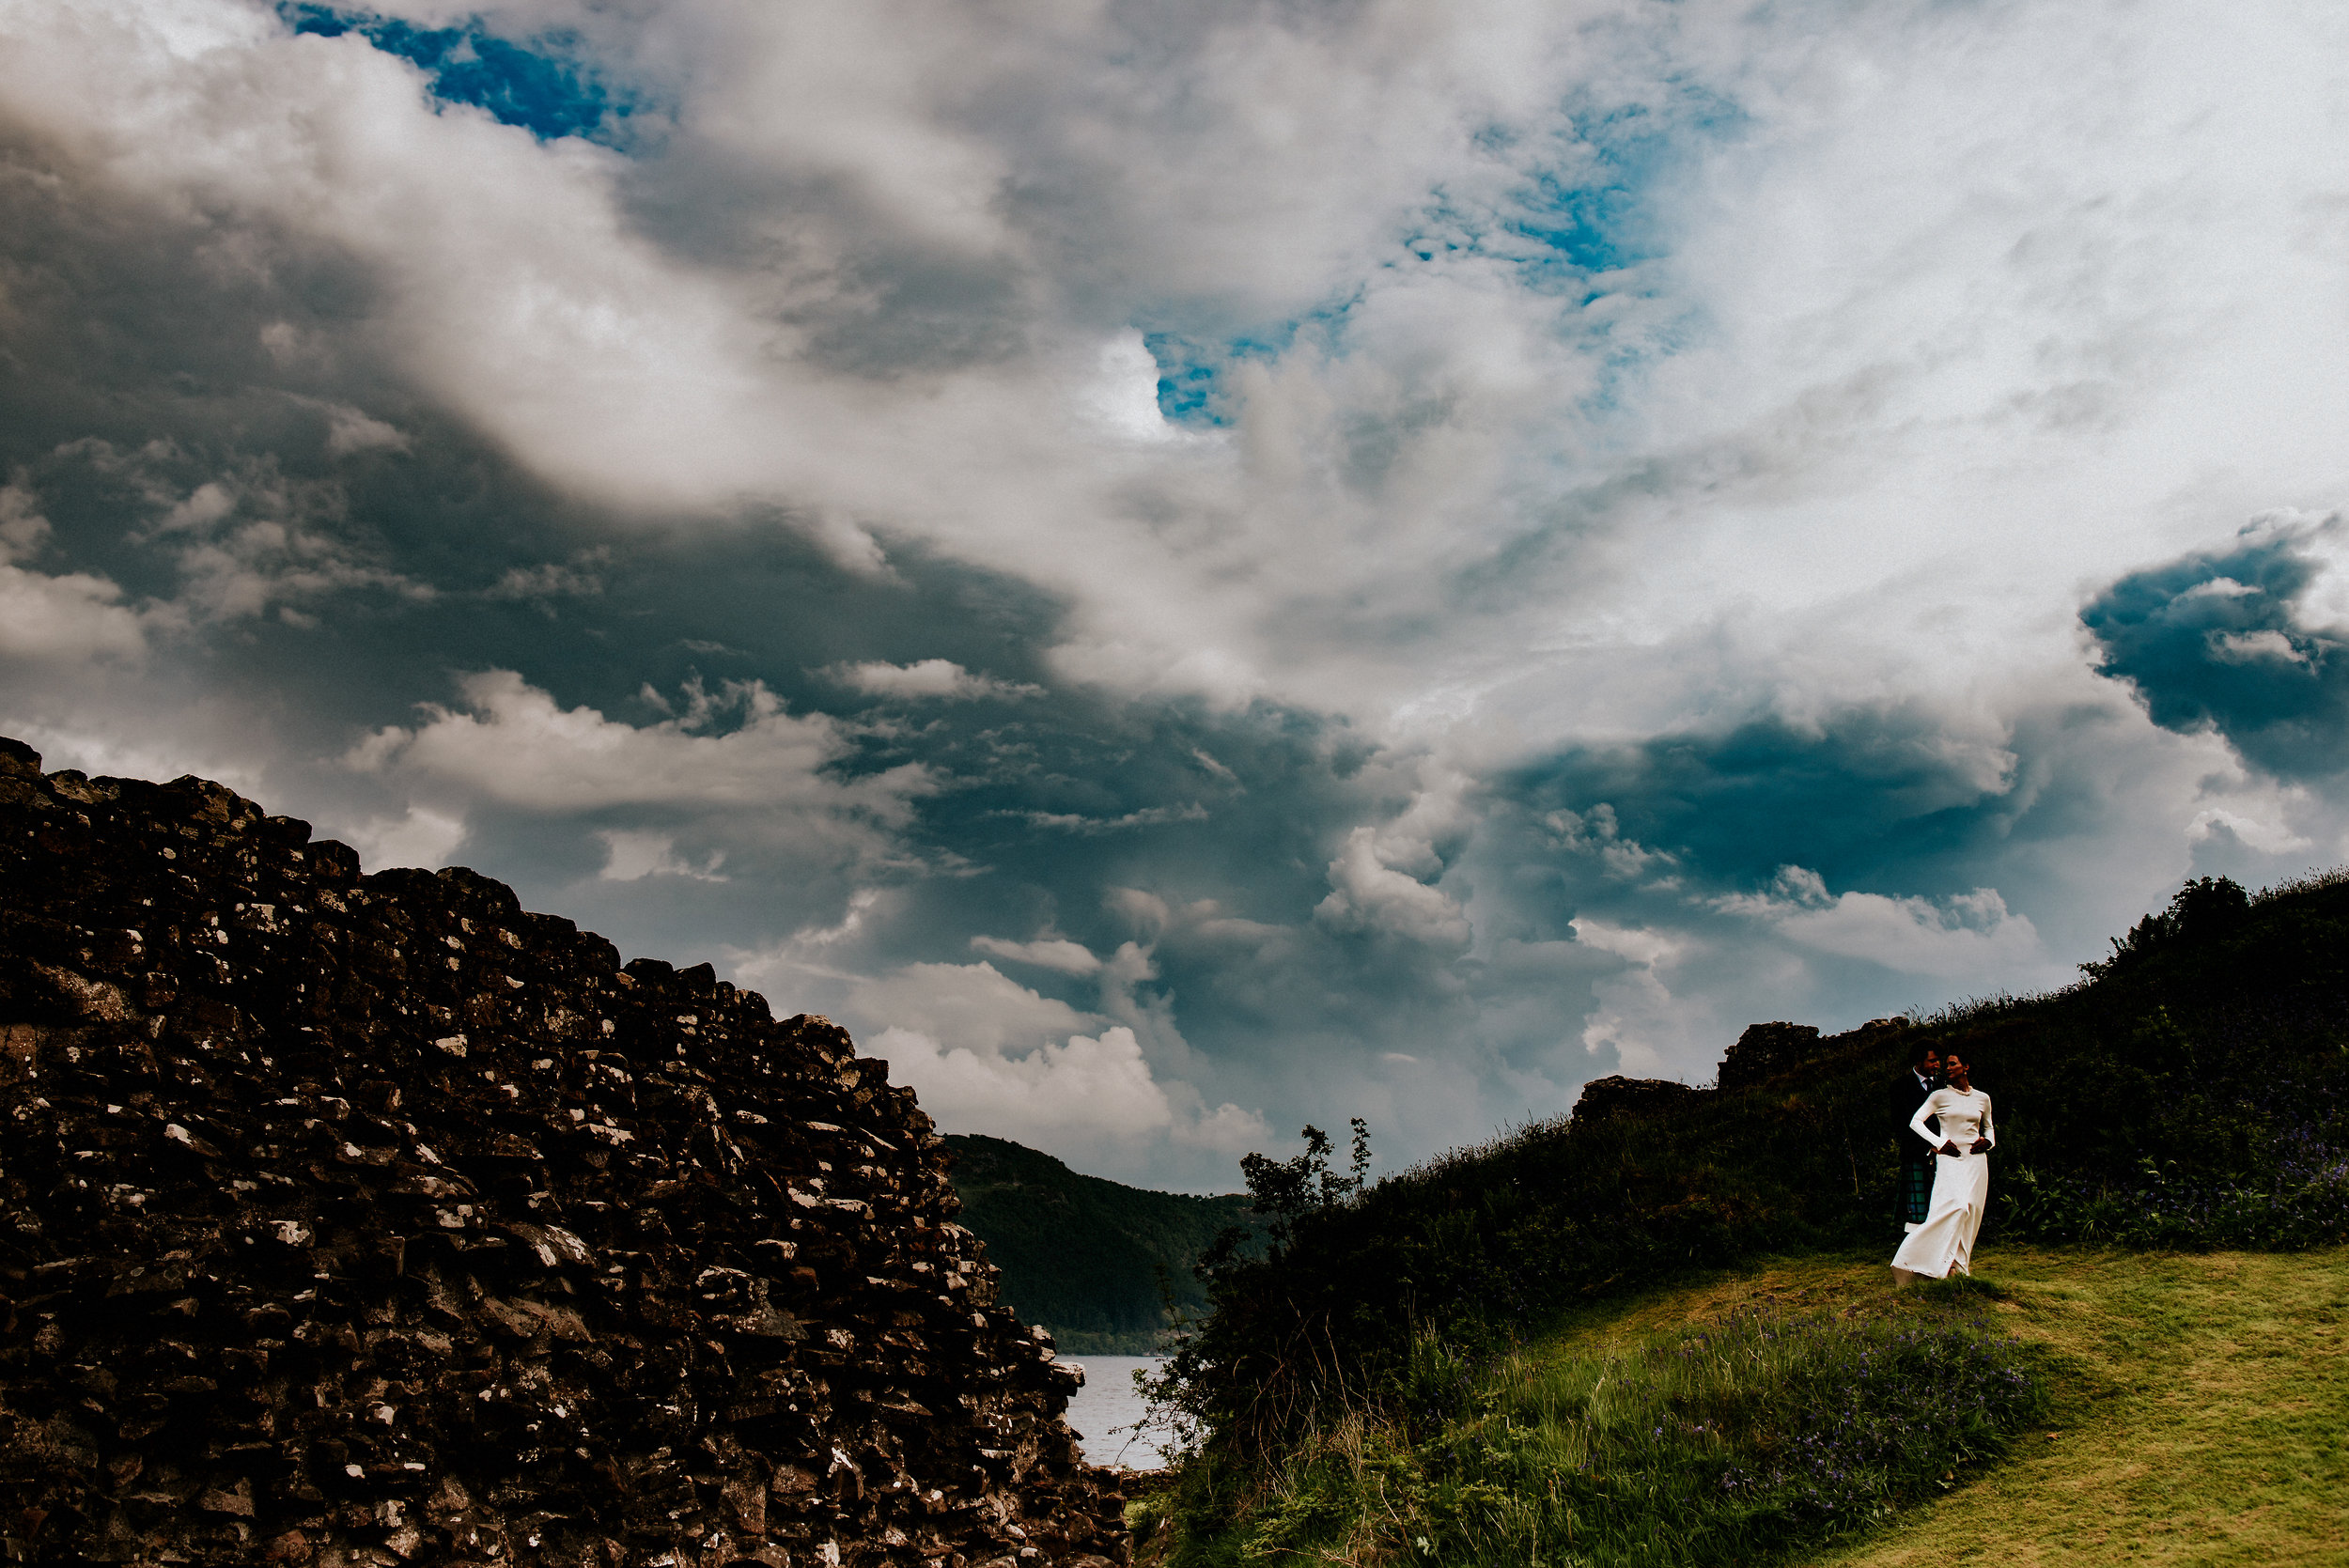 Epic Scottish landscapes, An outdoor wedding ceremony amidst the awe inspiring Urquhart Castle. A river boat cruise, From kilts to confetti explosions in this atmospheric alternative Loch Ness wedding